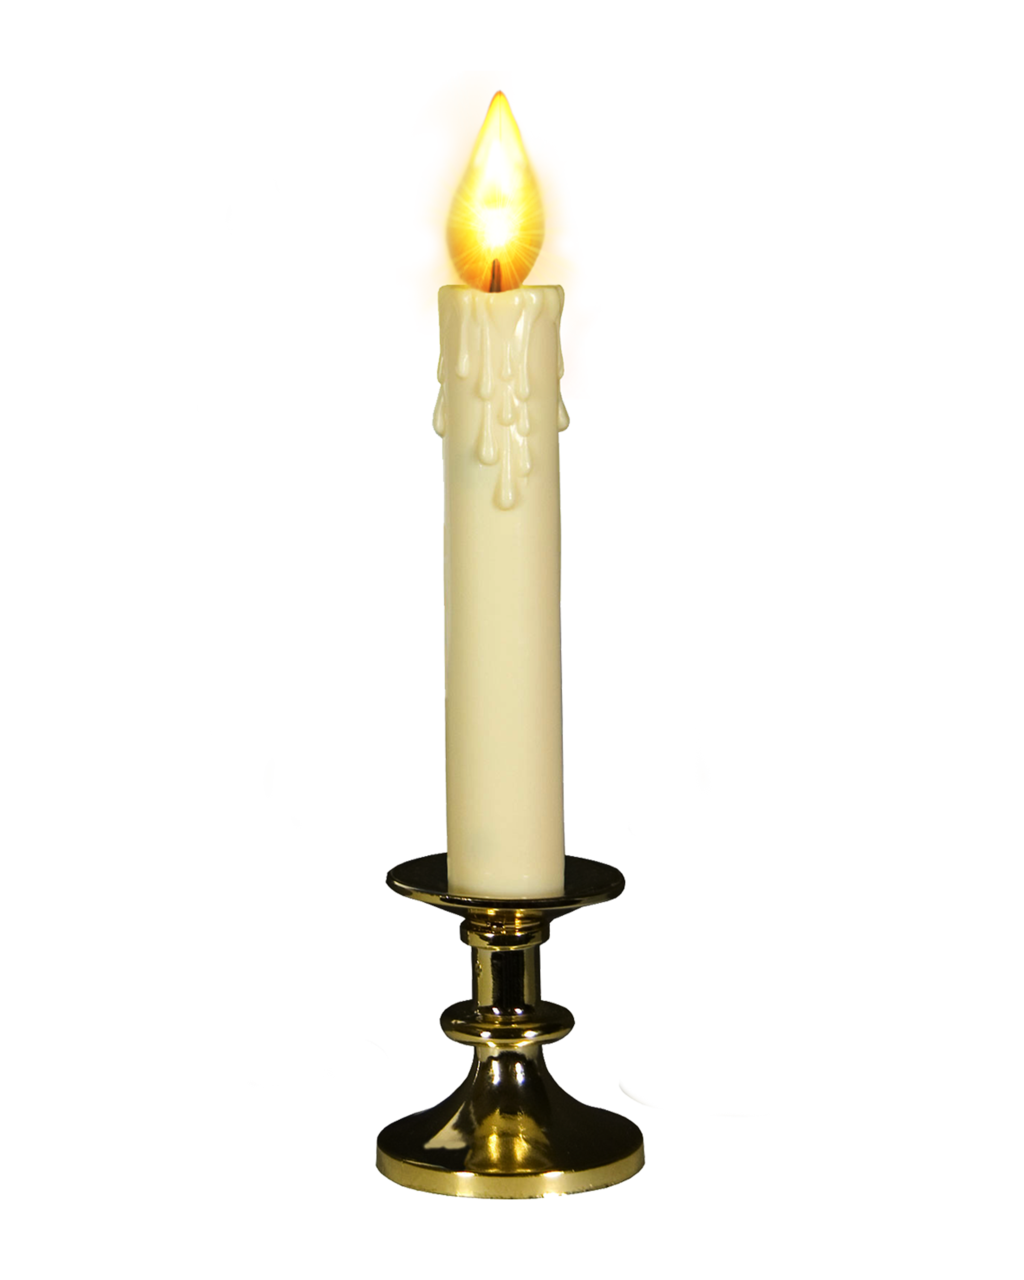 Melted candles png. Images free download candle